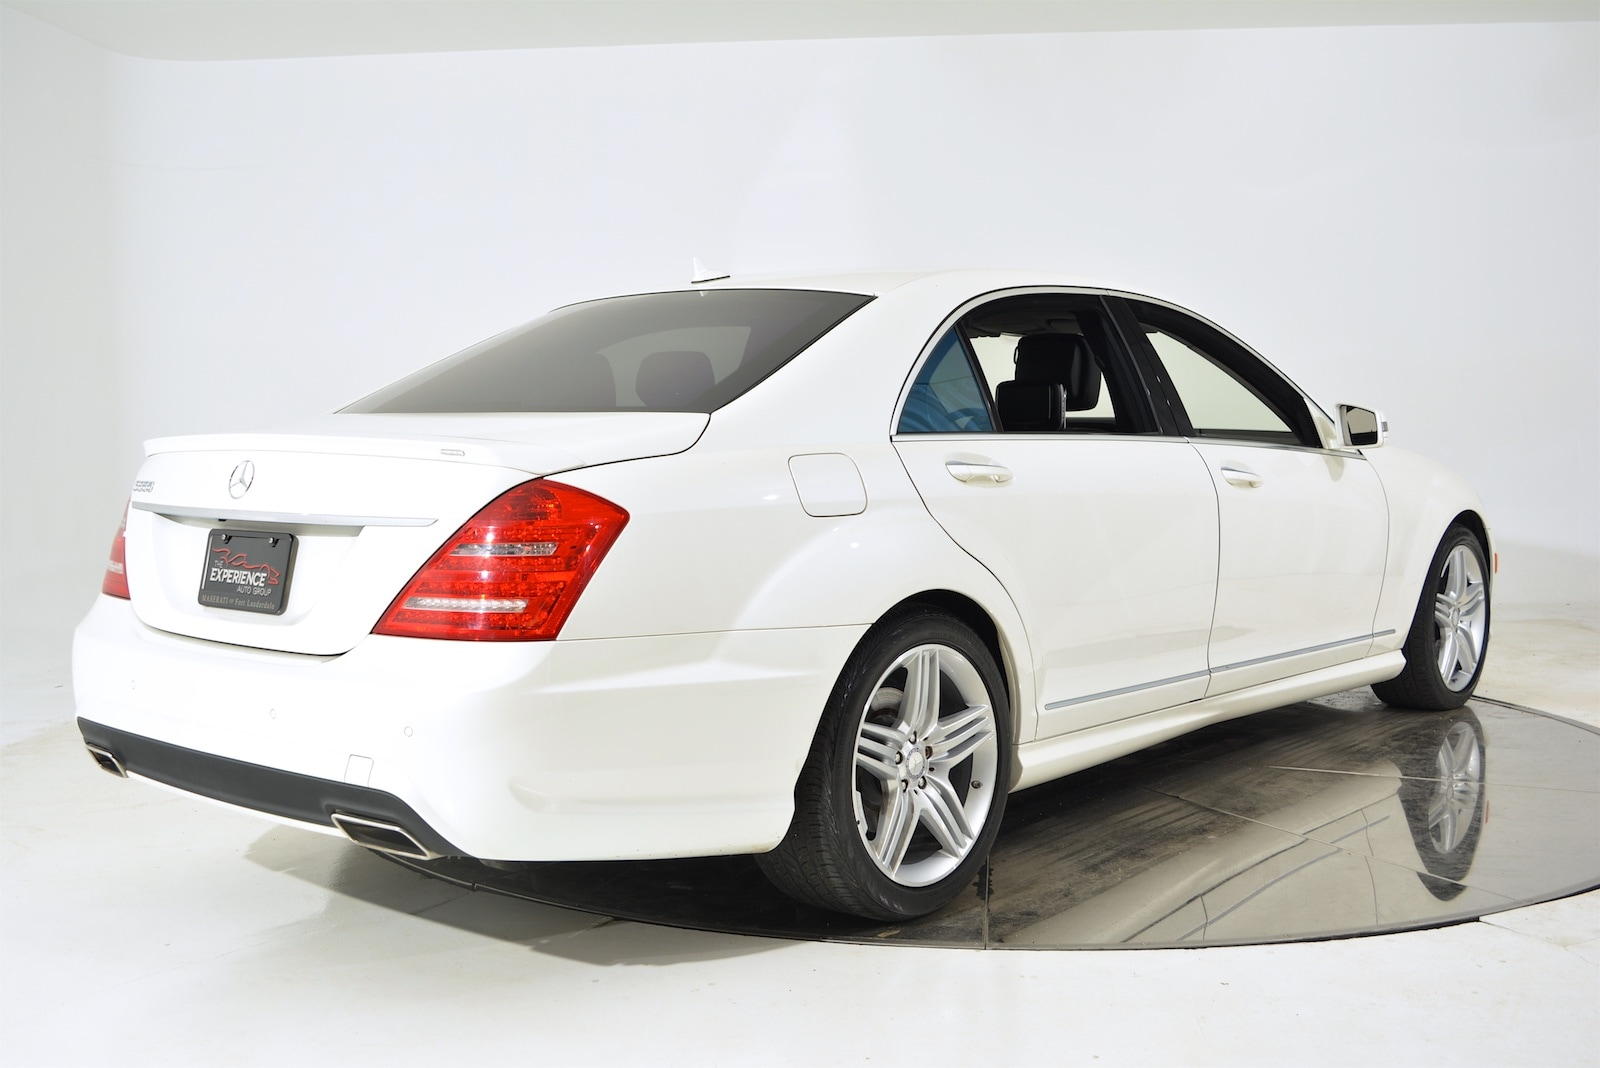 Used 2013 mercedes benz s550 for sale fort lauderdale fl for Used s550 mercedes benz